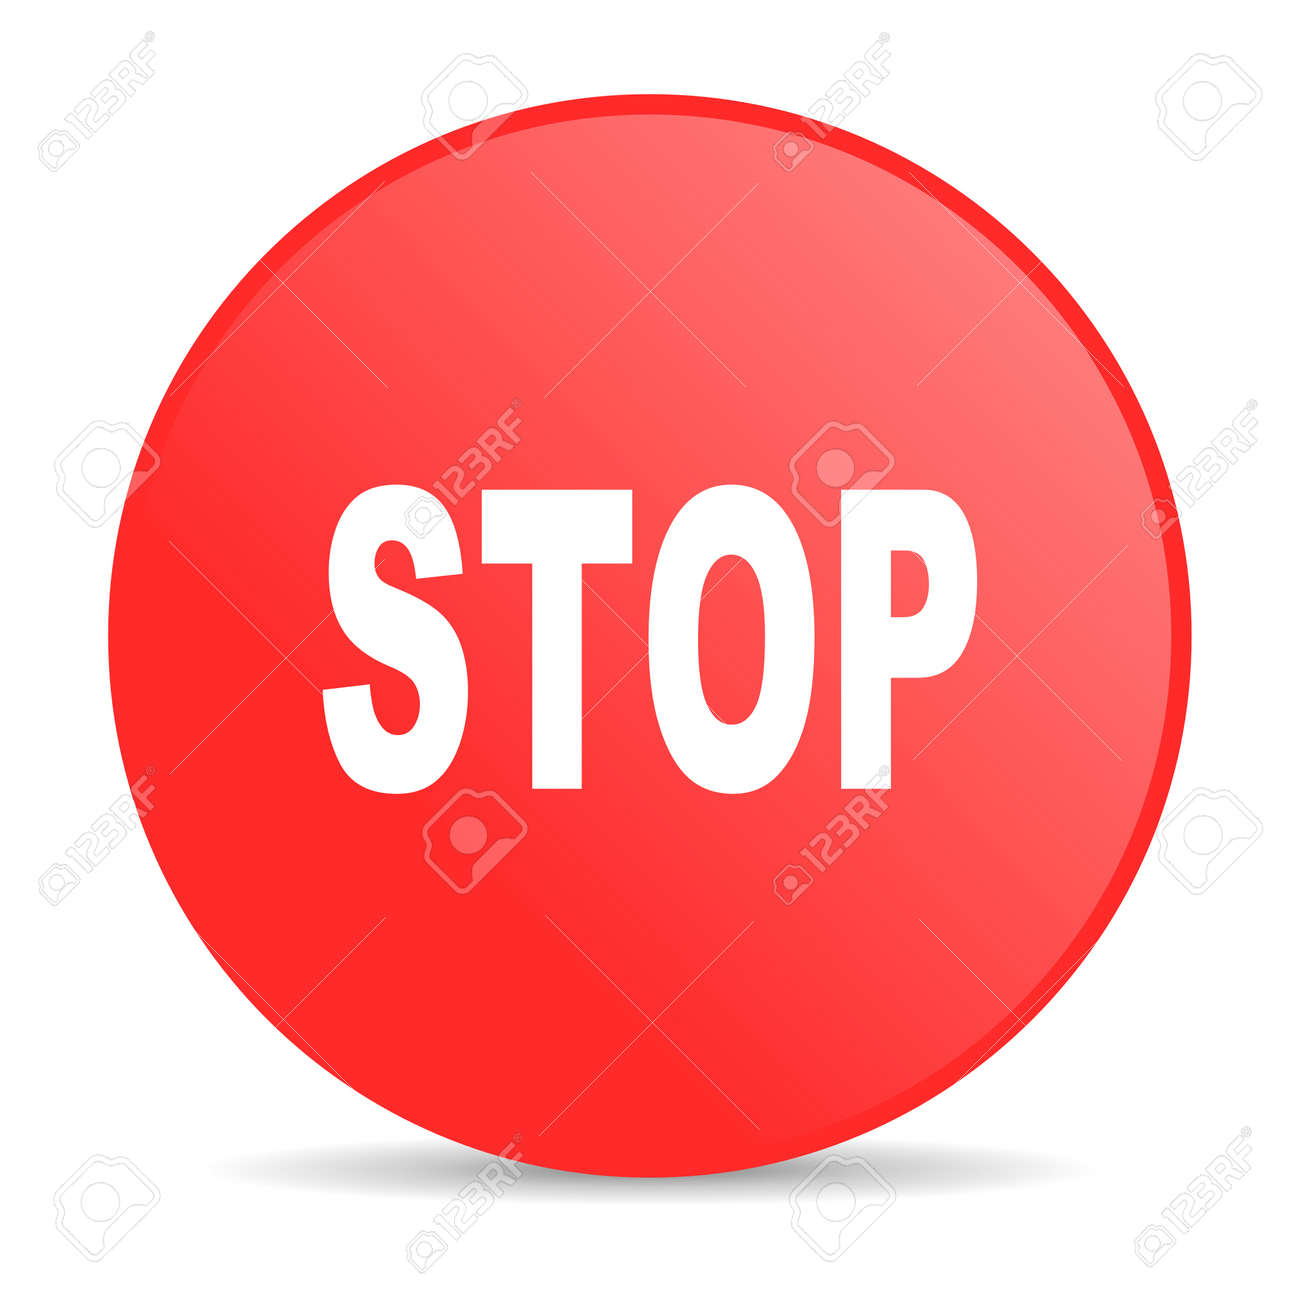 stop red circle web glossy icon Stock Photo - 19252593